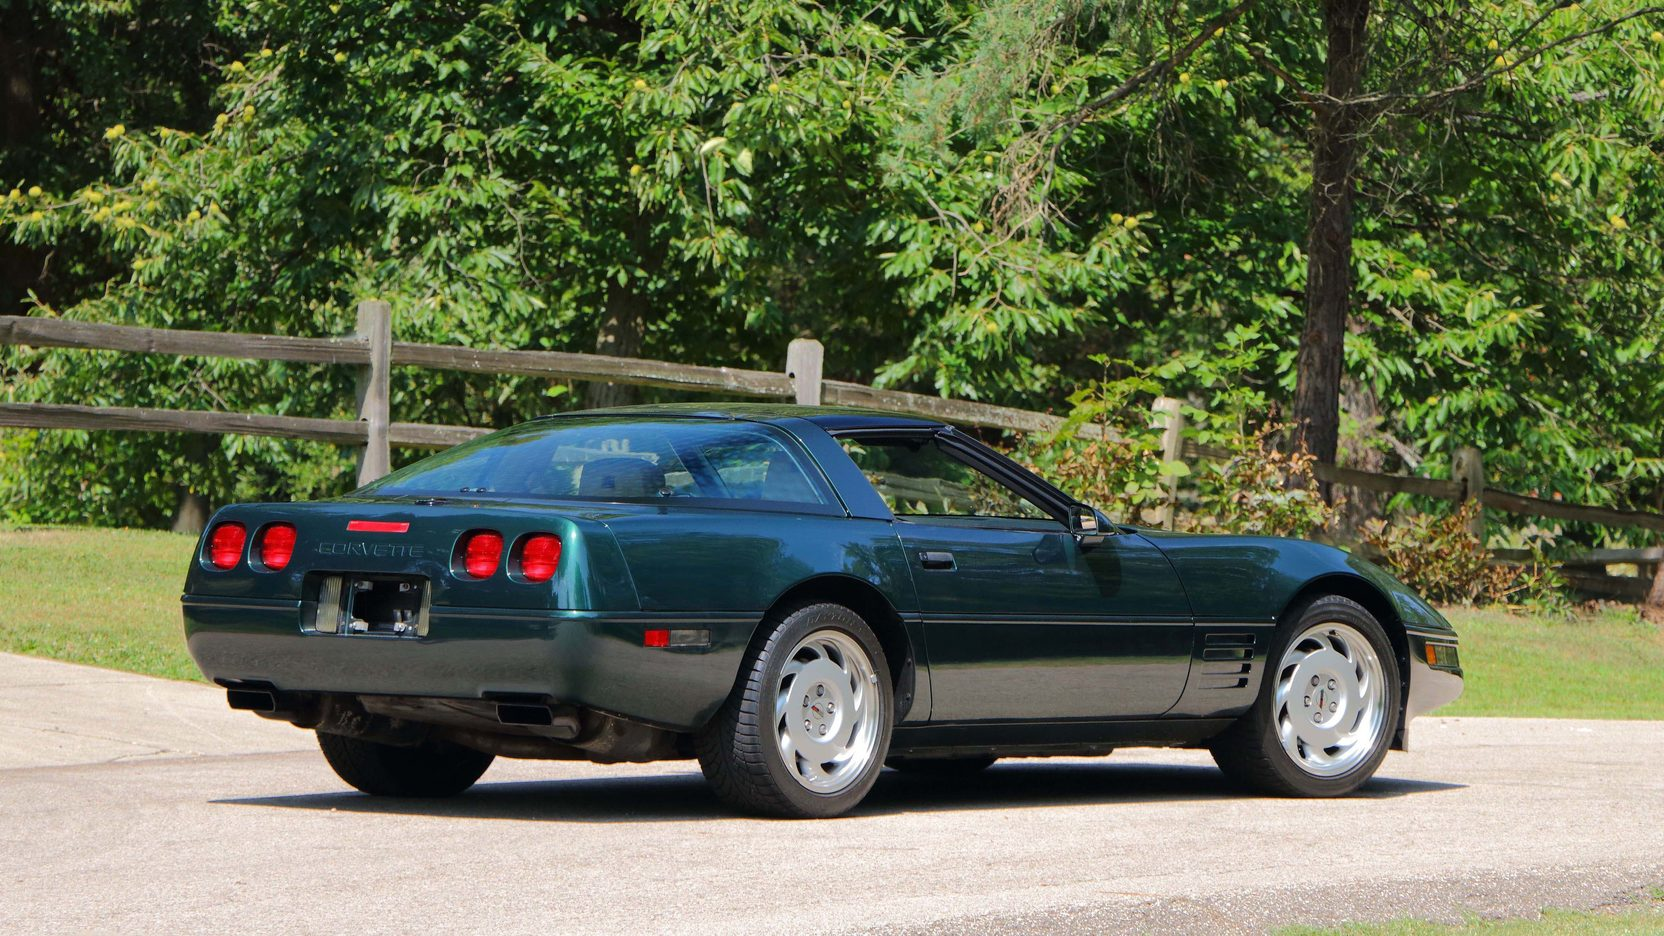 1992 Chevrolet Corvette rear 3/4